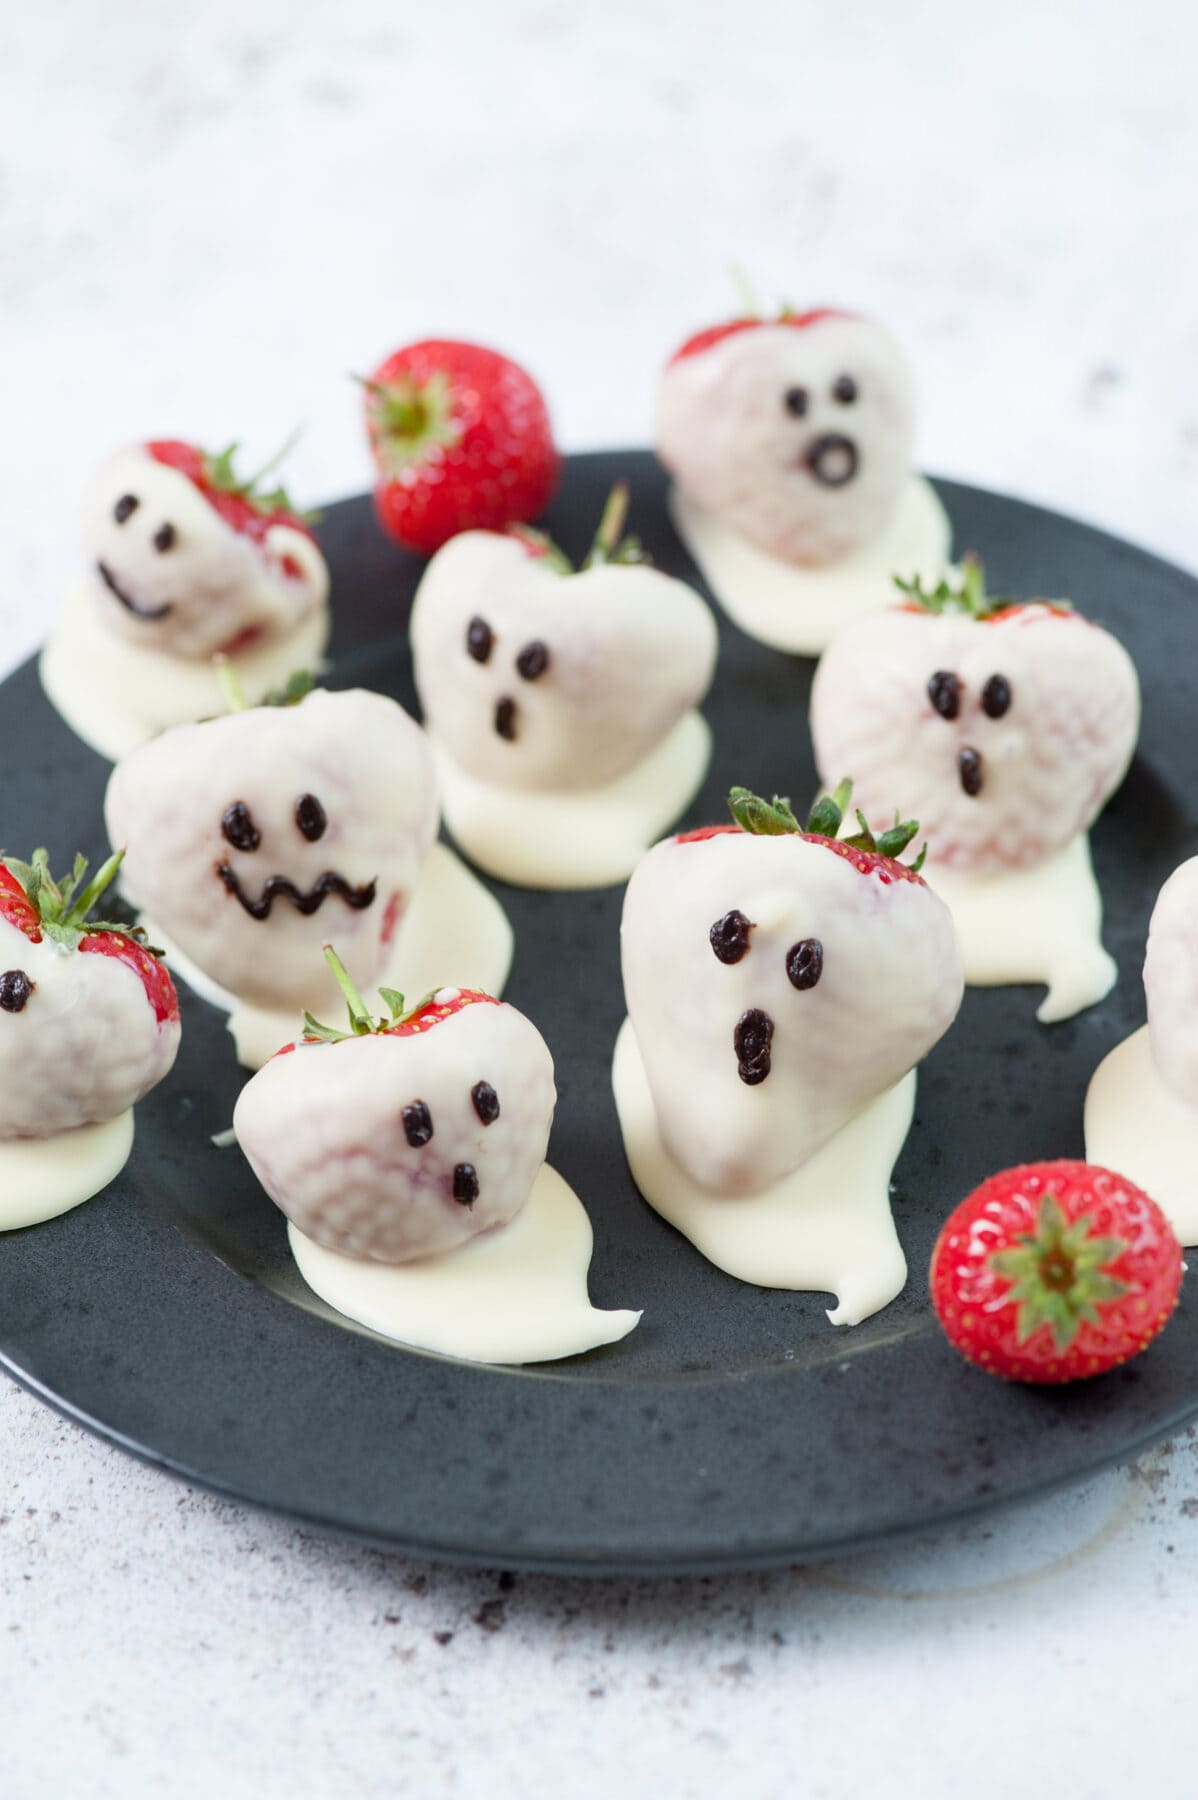 White chocolate covered strawberries (Strawberry ghosts) on a black plate.